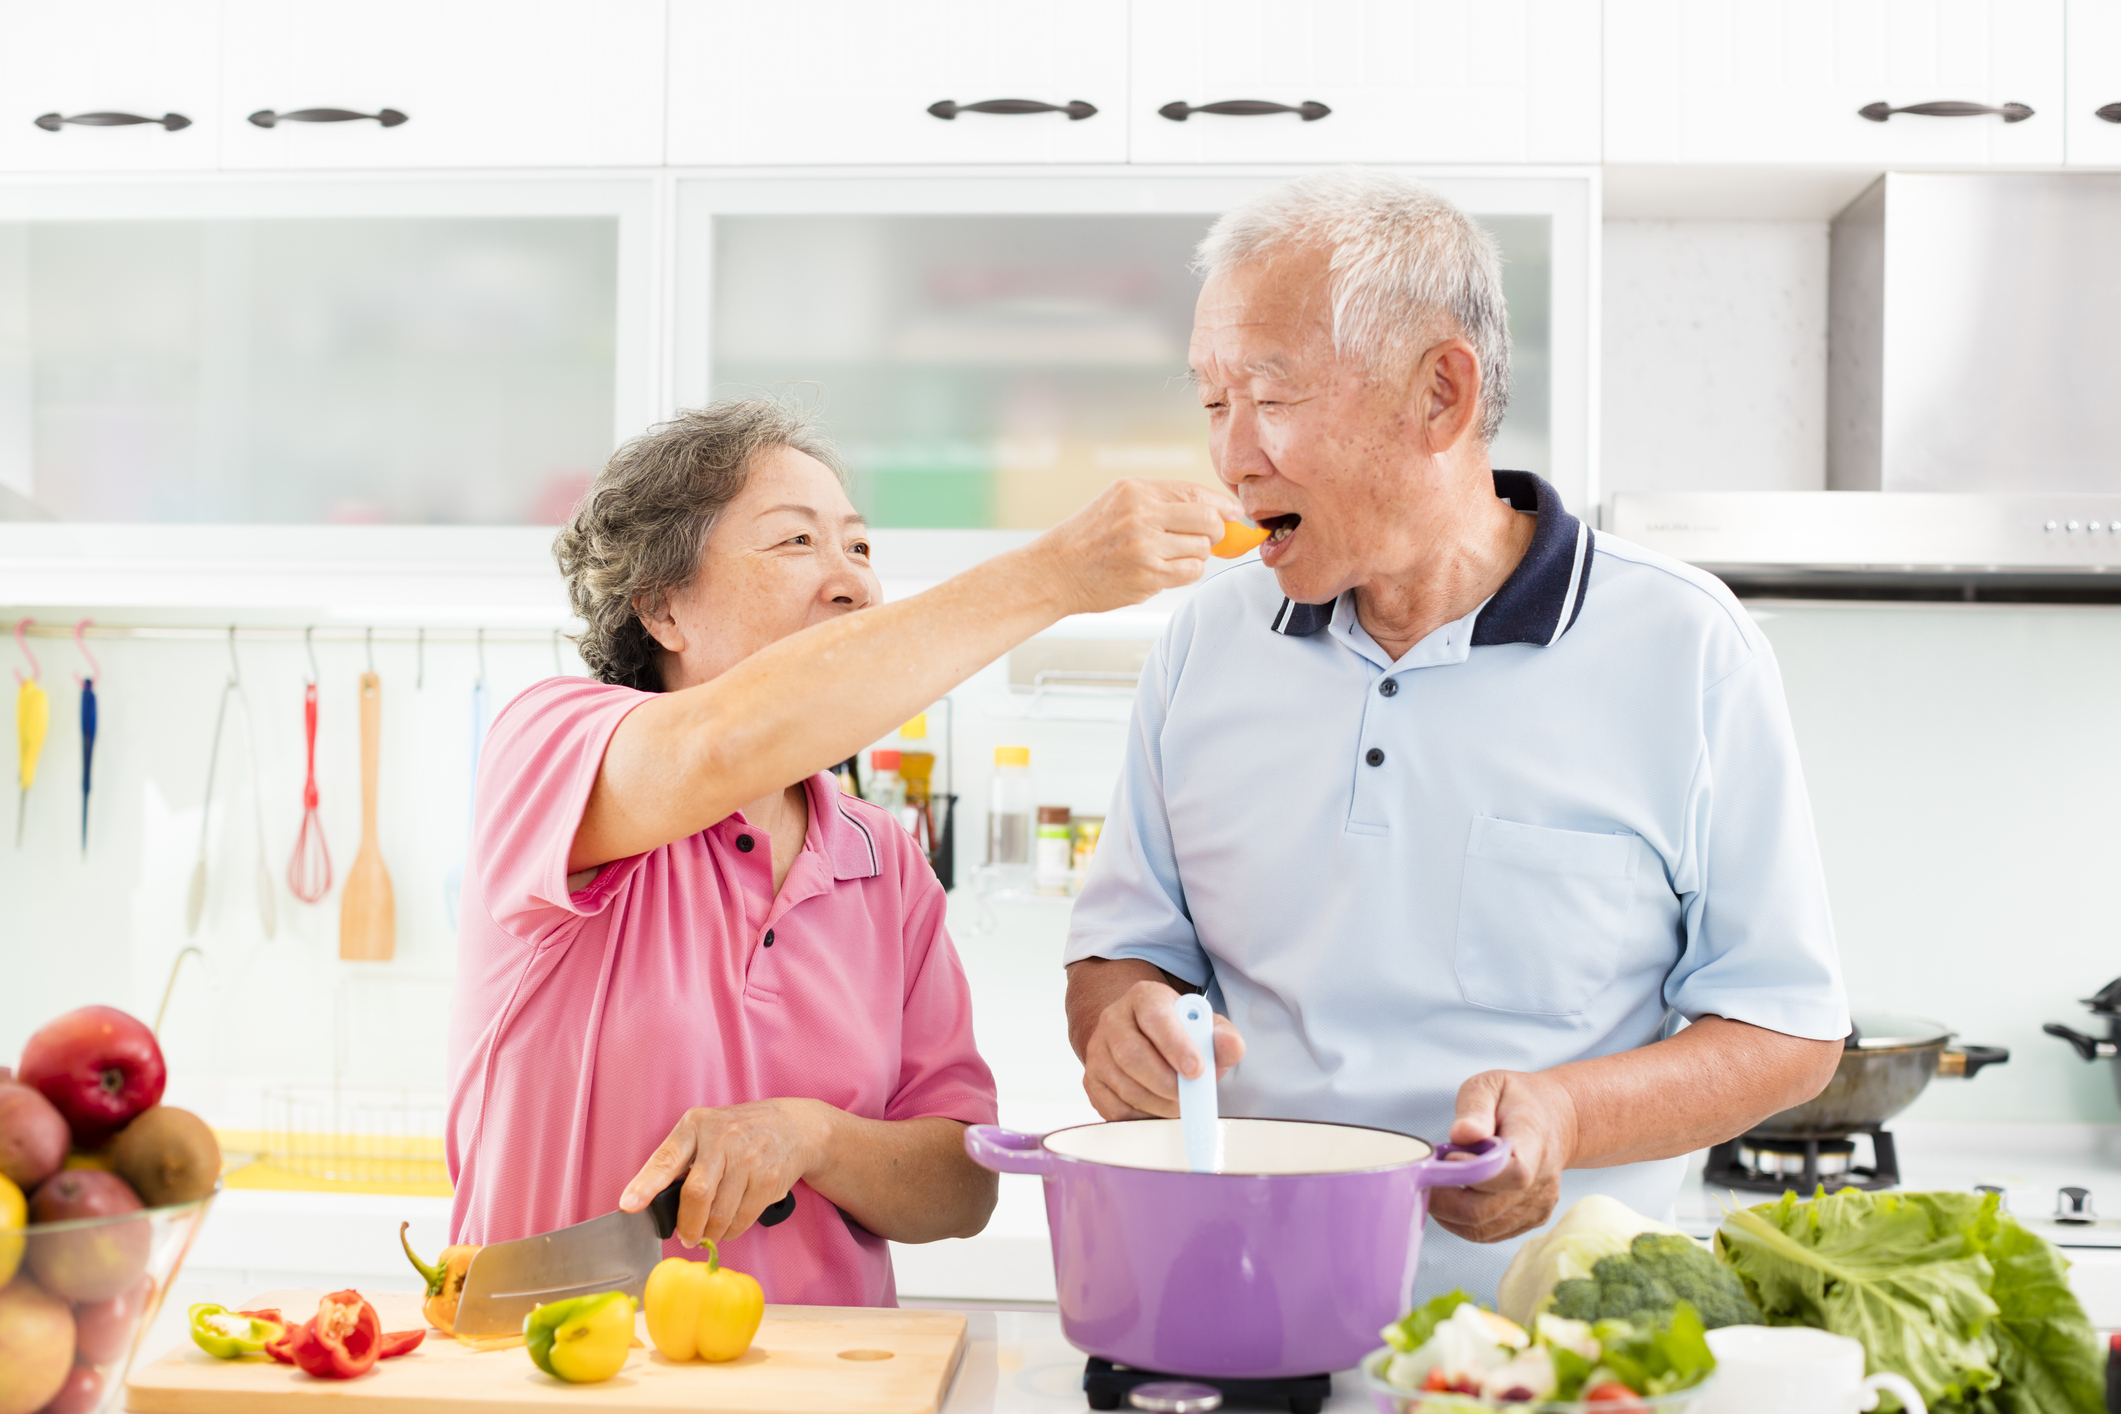 Elderly people eating healthy oxford healthcare tulsa healthy food prep.jpg